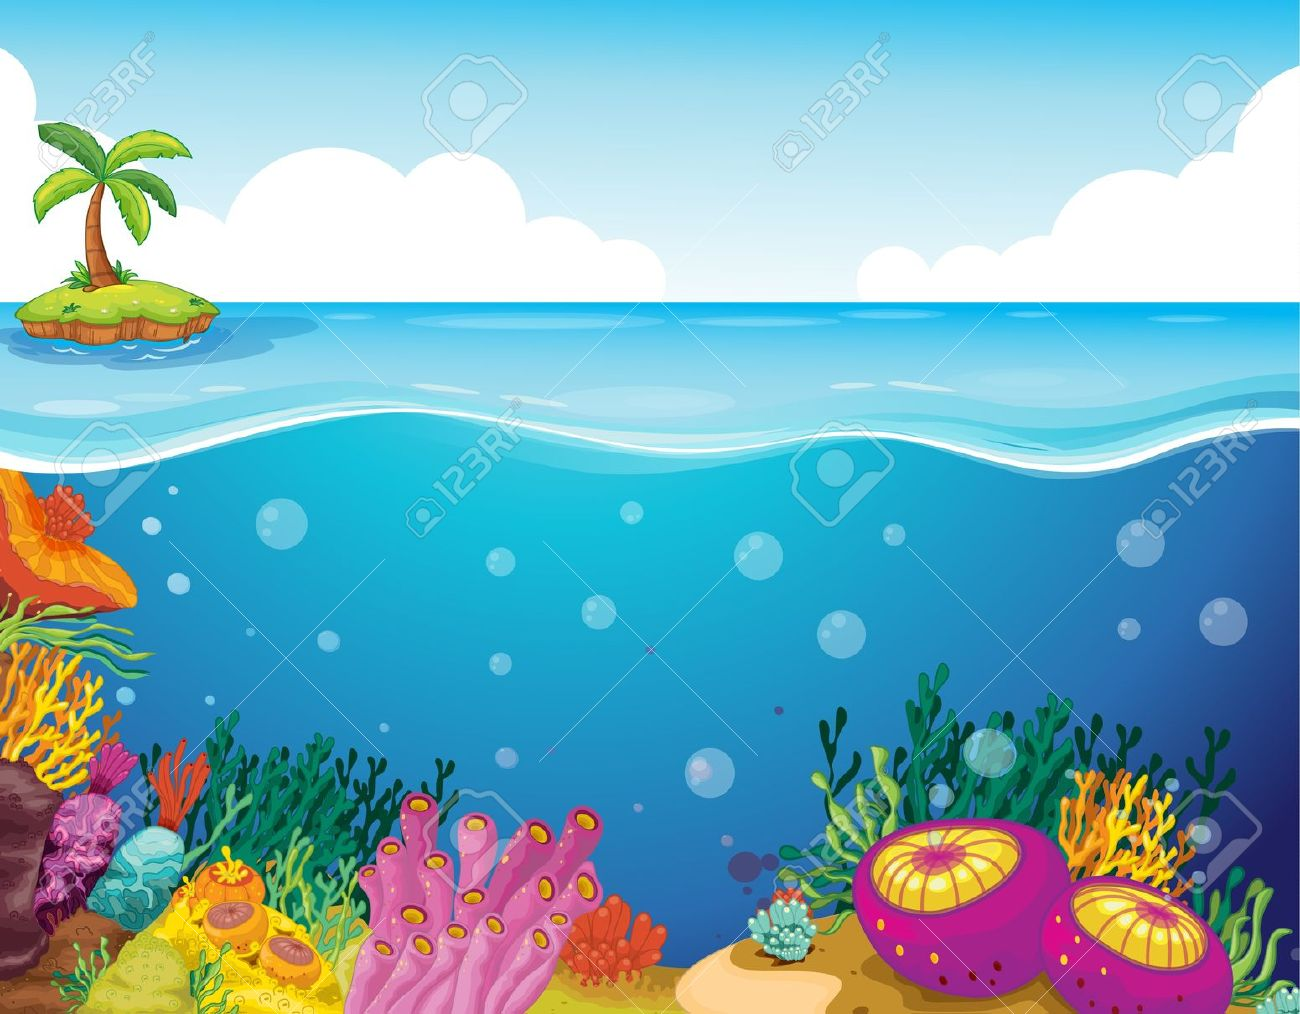 Deep coral clipart 20 free Cliparts | Download images on ...